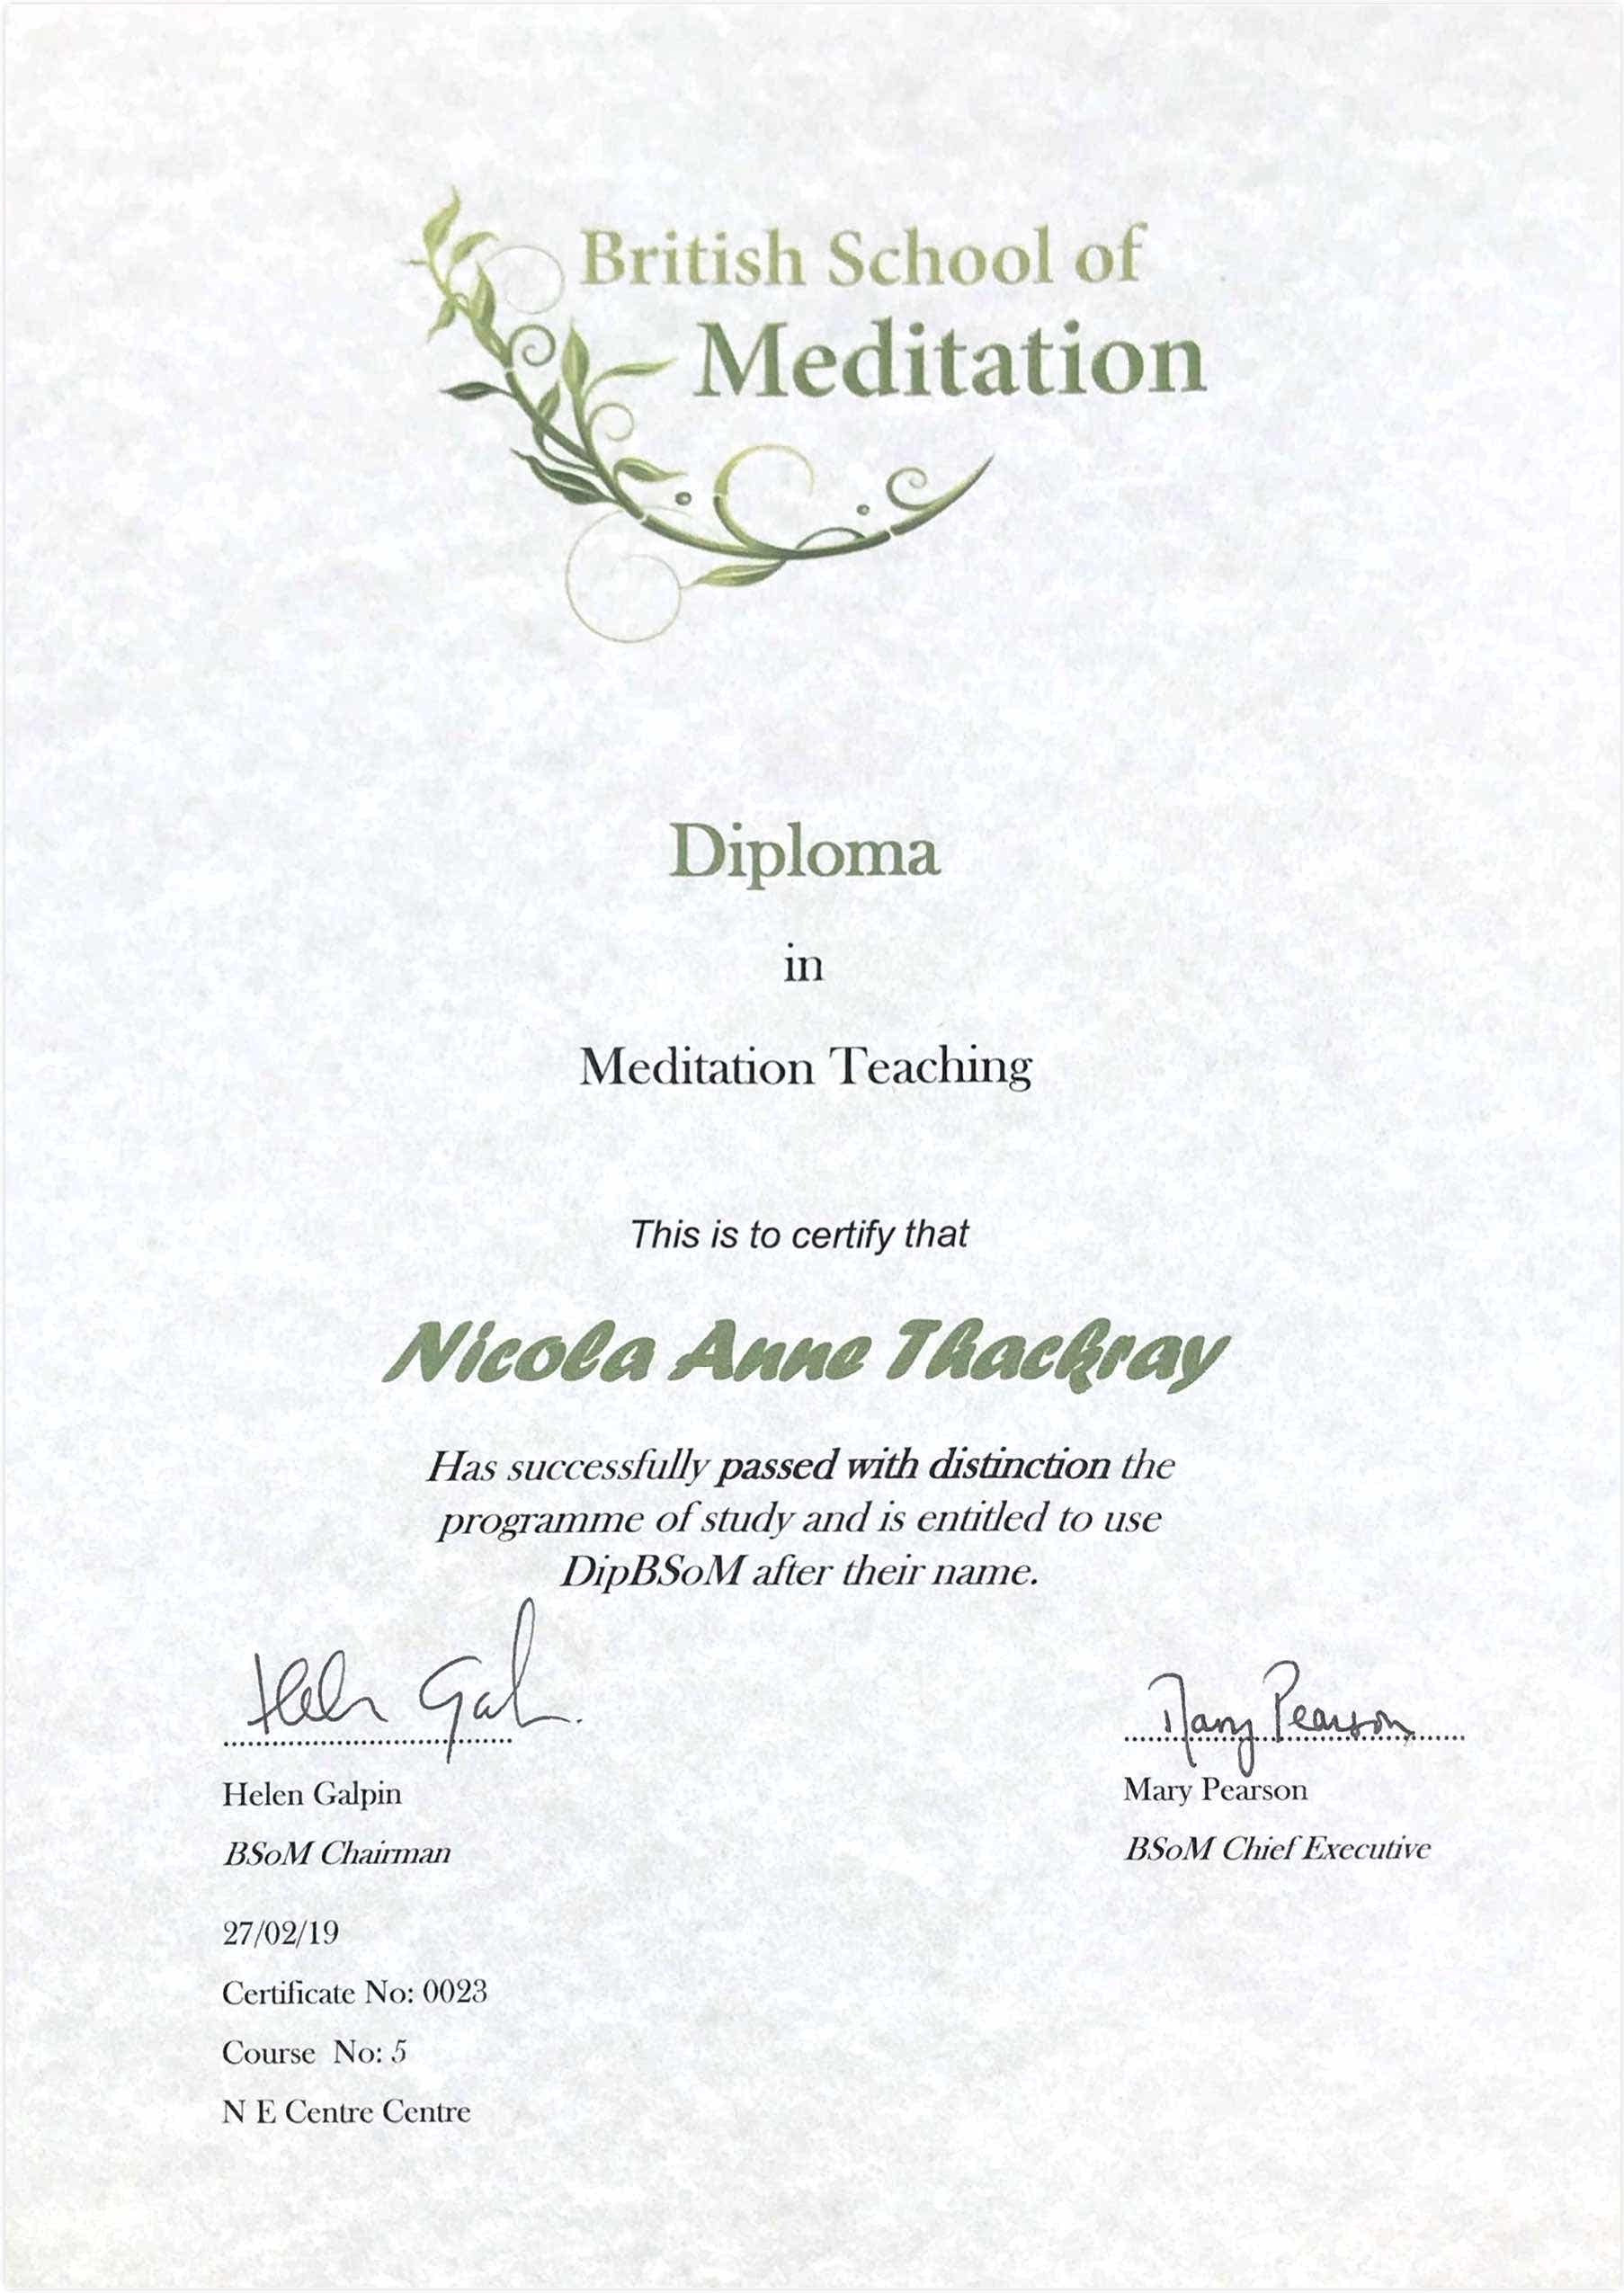 Nicky's Diploma in Meditation Teaching — passed with Distinction — from the British School of Meditation